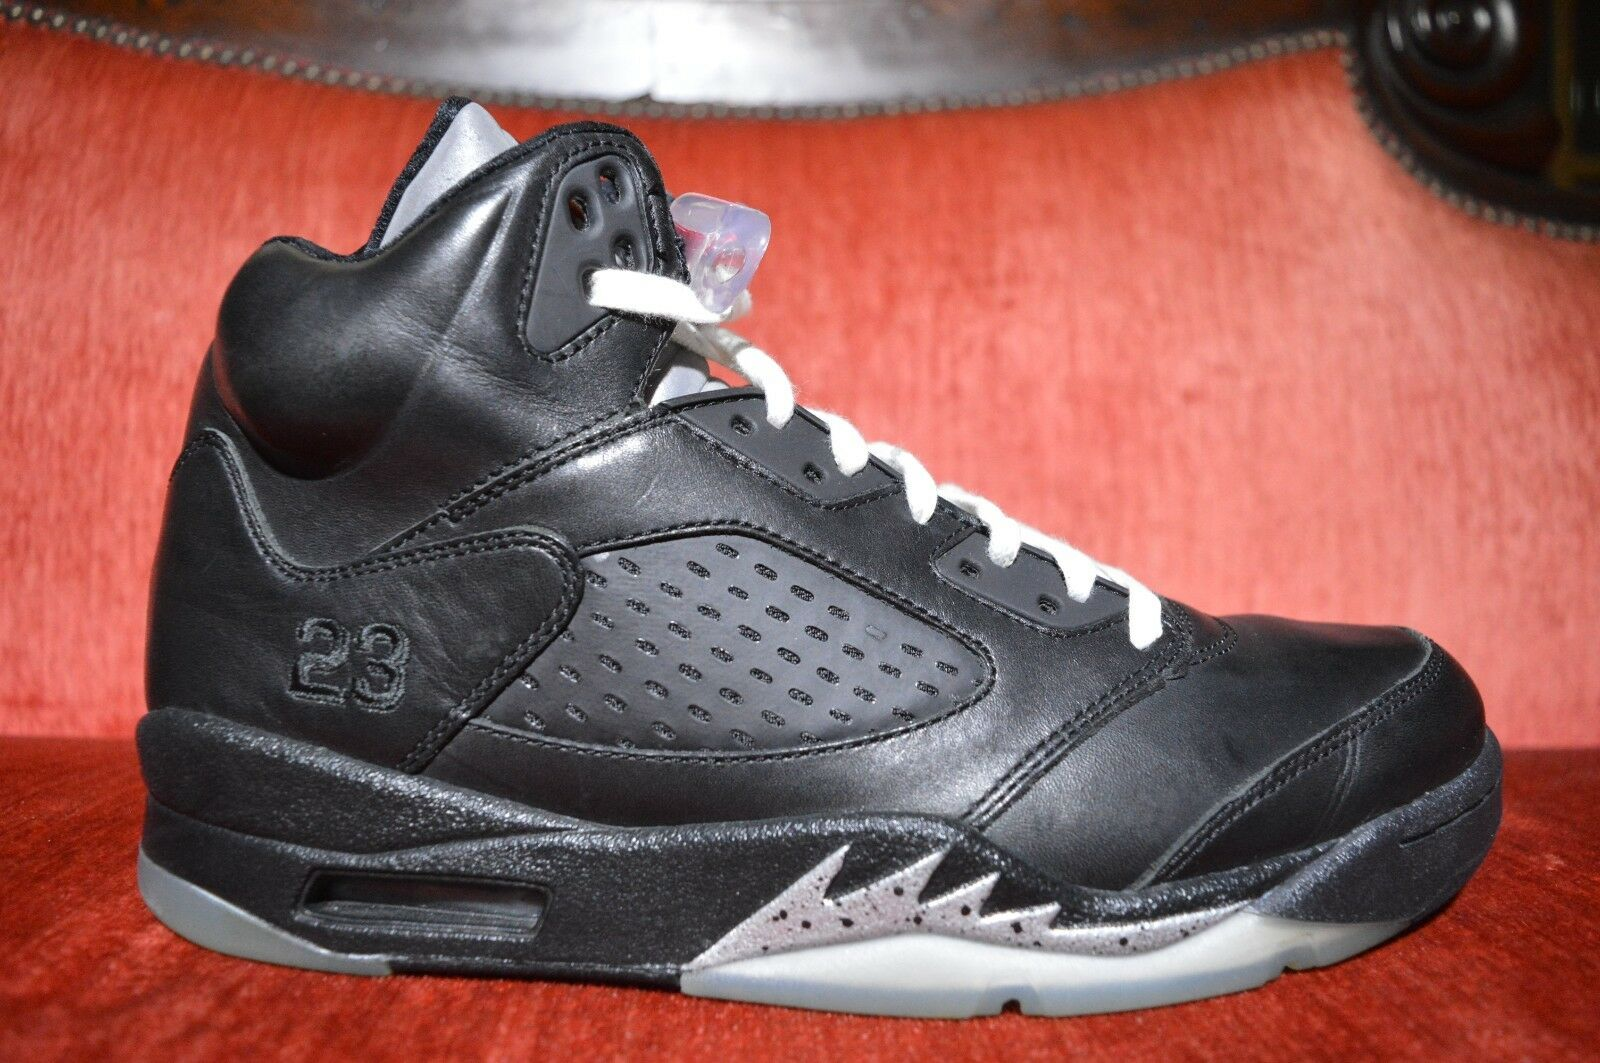 Nike Air Jordan 5 V Retro Premio  Bin 23  Black Size 9.5 444844 001 OG ALL Metal